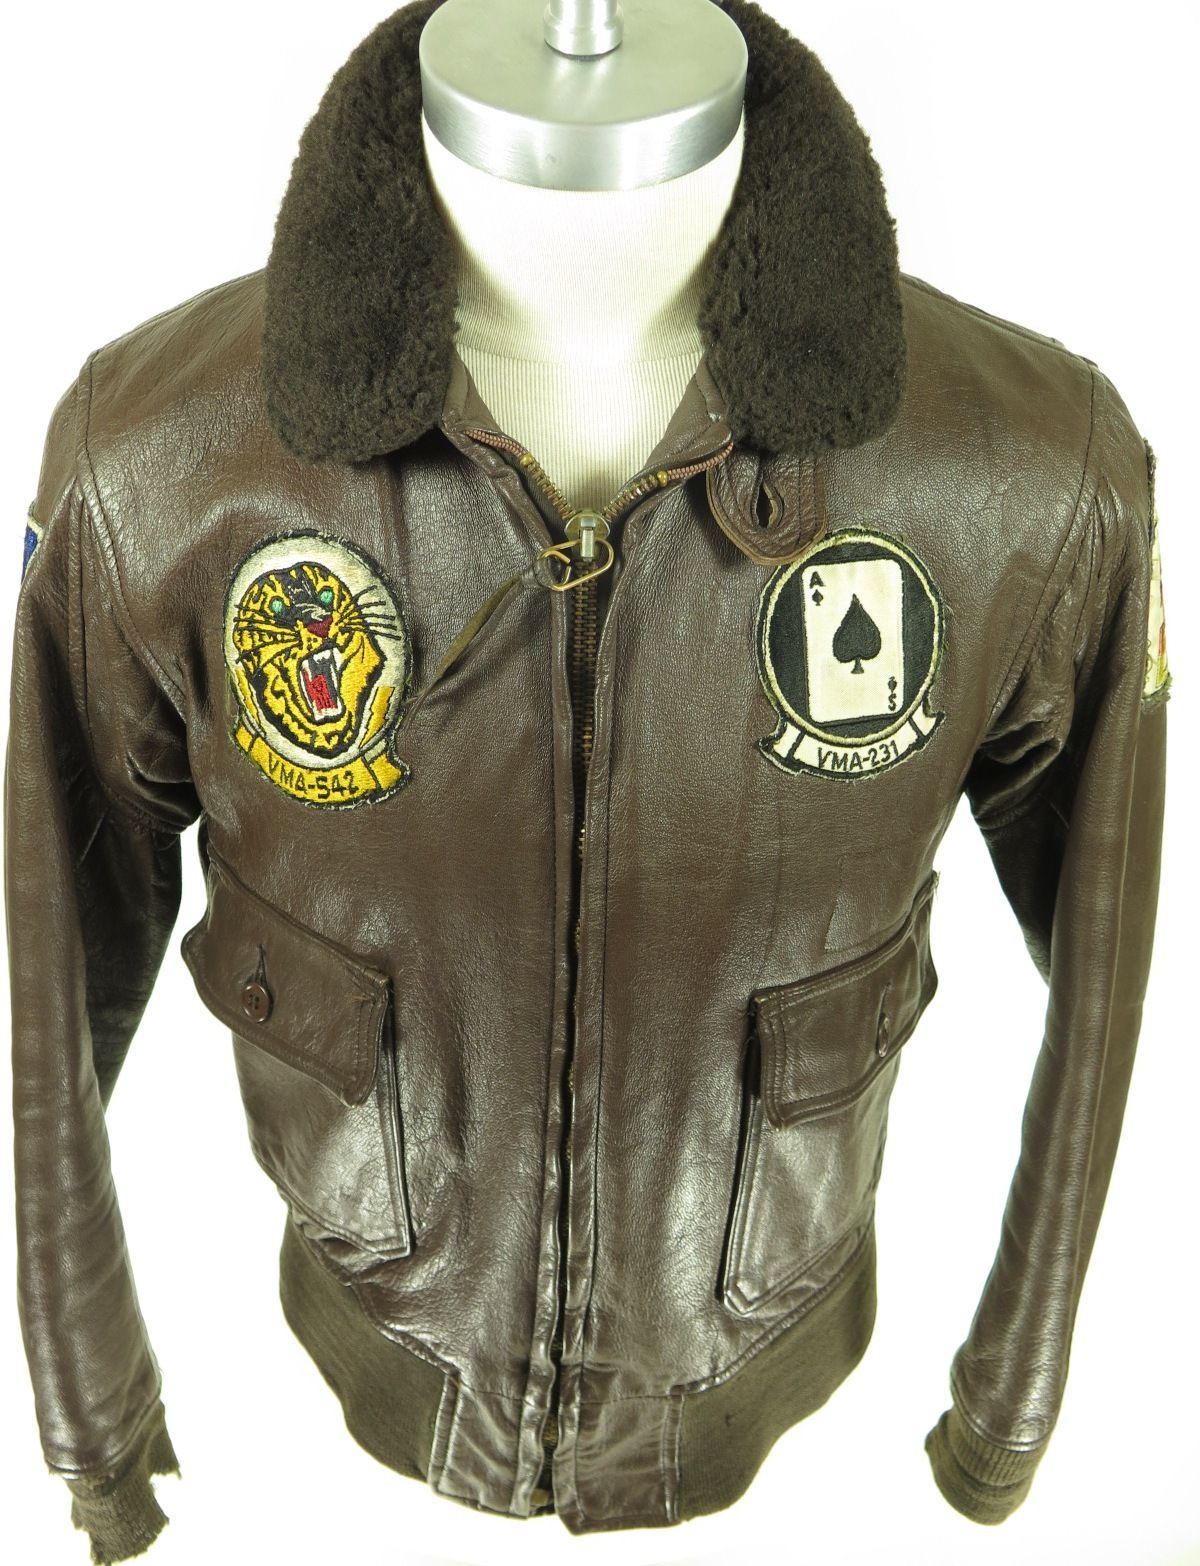 907ed7e609ee08 Vintage Brill Bros 1973 Vietnam Type B1 leather flight bomber jacket.  Marine group combat training